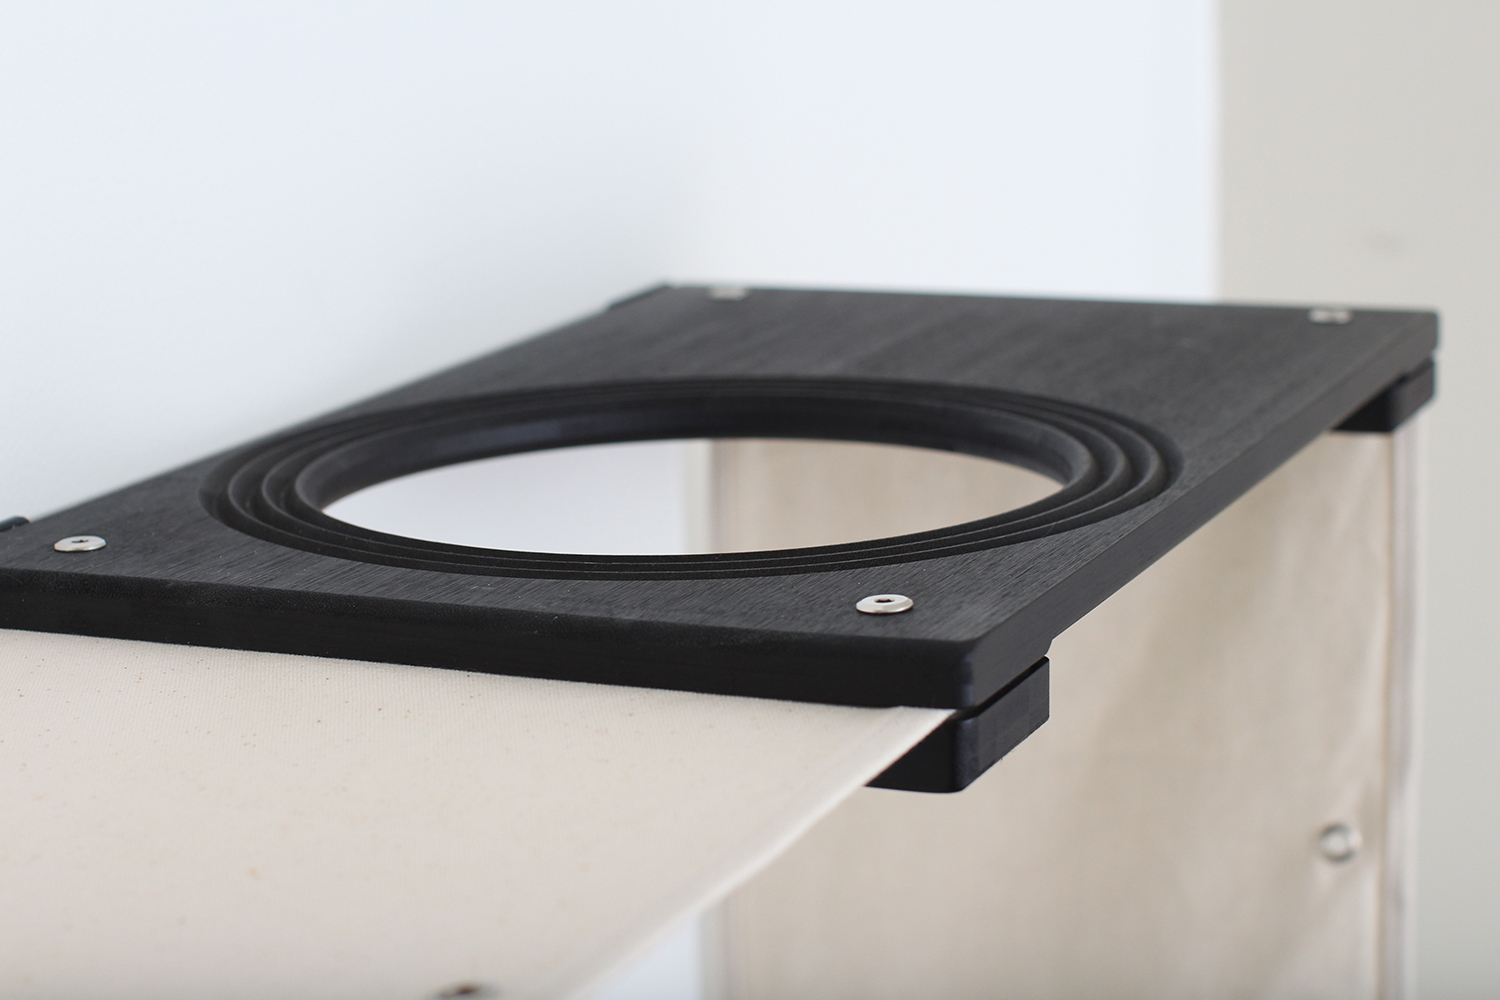 This photo displays a close up of the Escape Hatch that is included with the Deluxe Cat Maze.